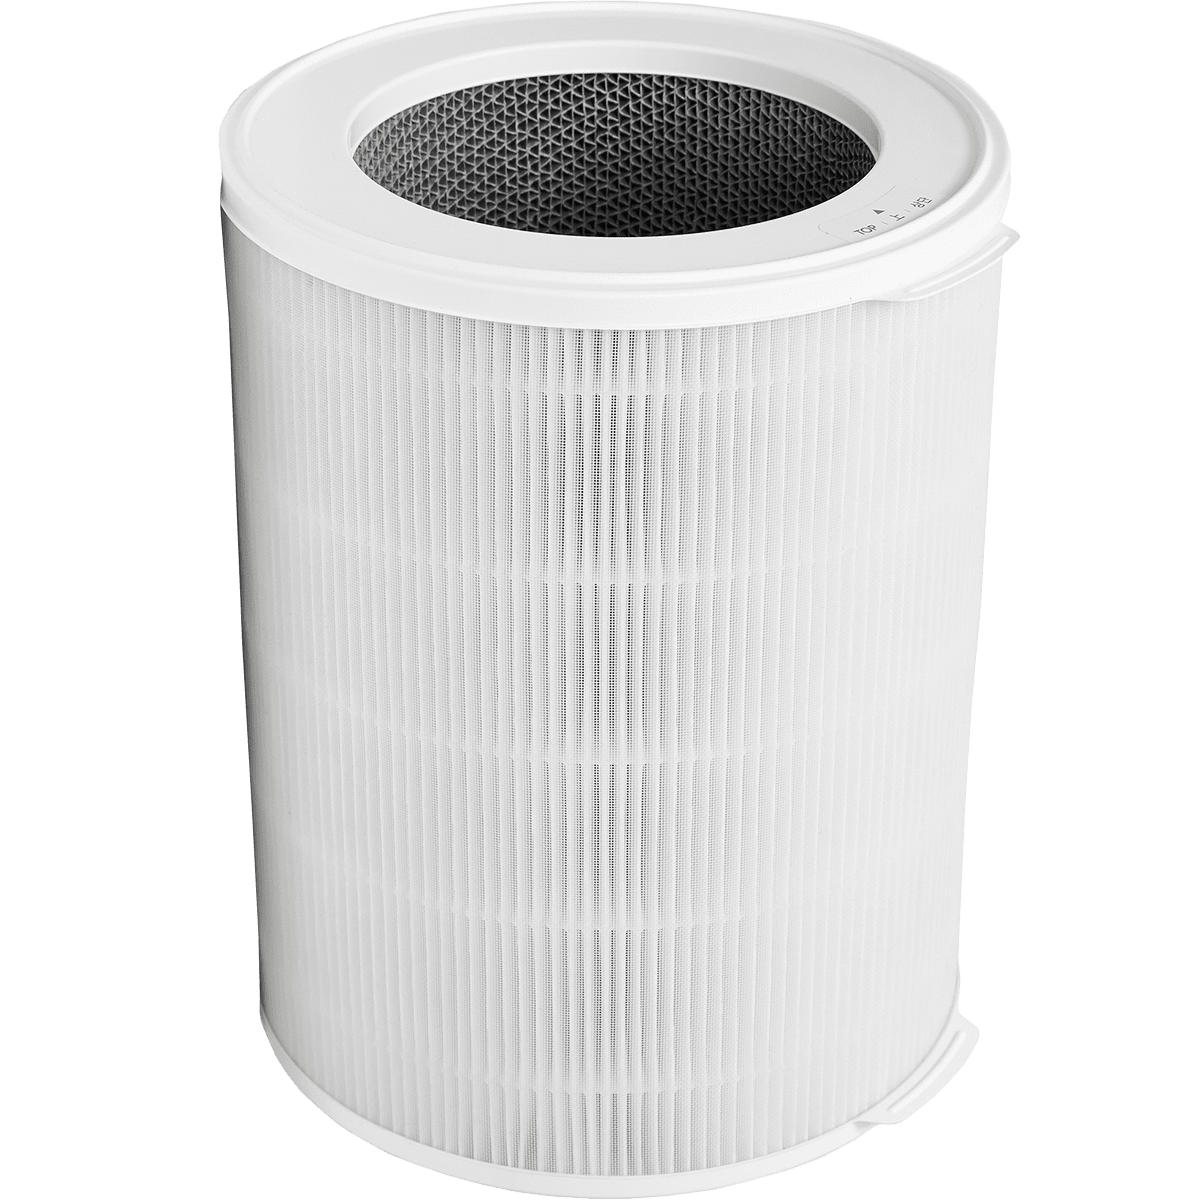 Winix replacement filter n sylvane for Winix filter cleaning